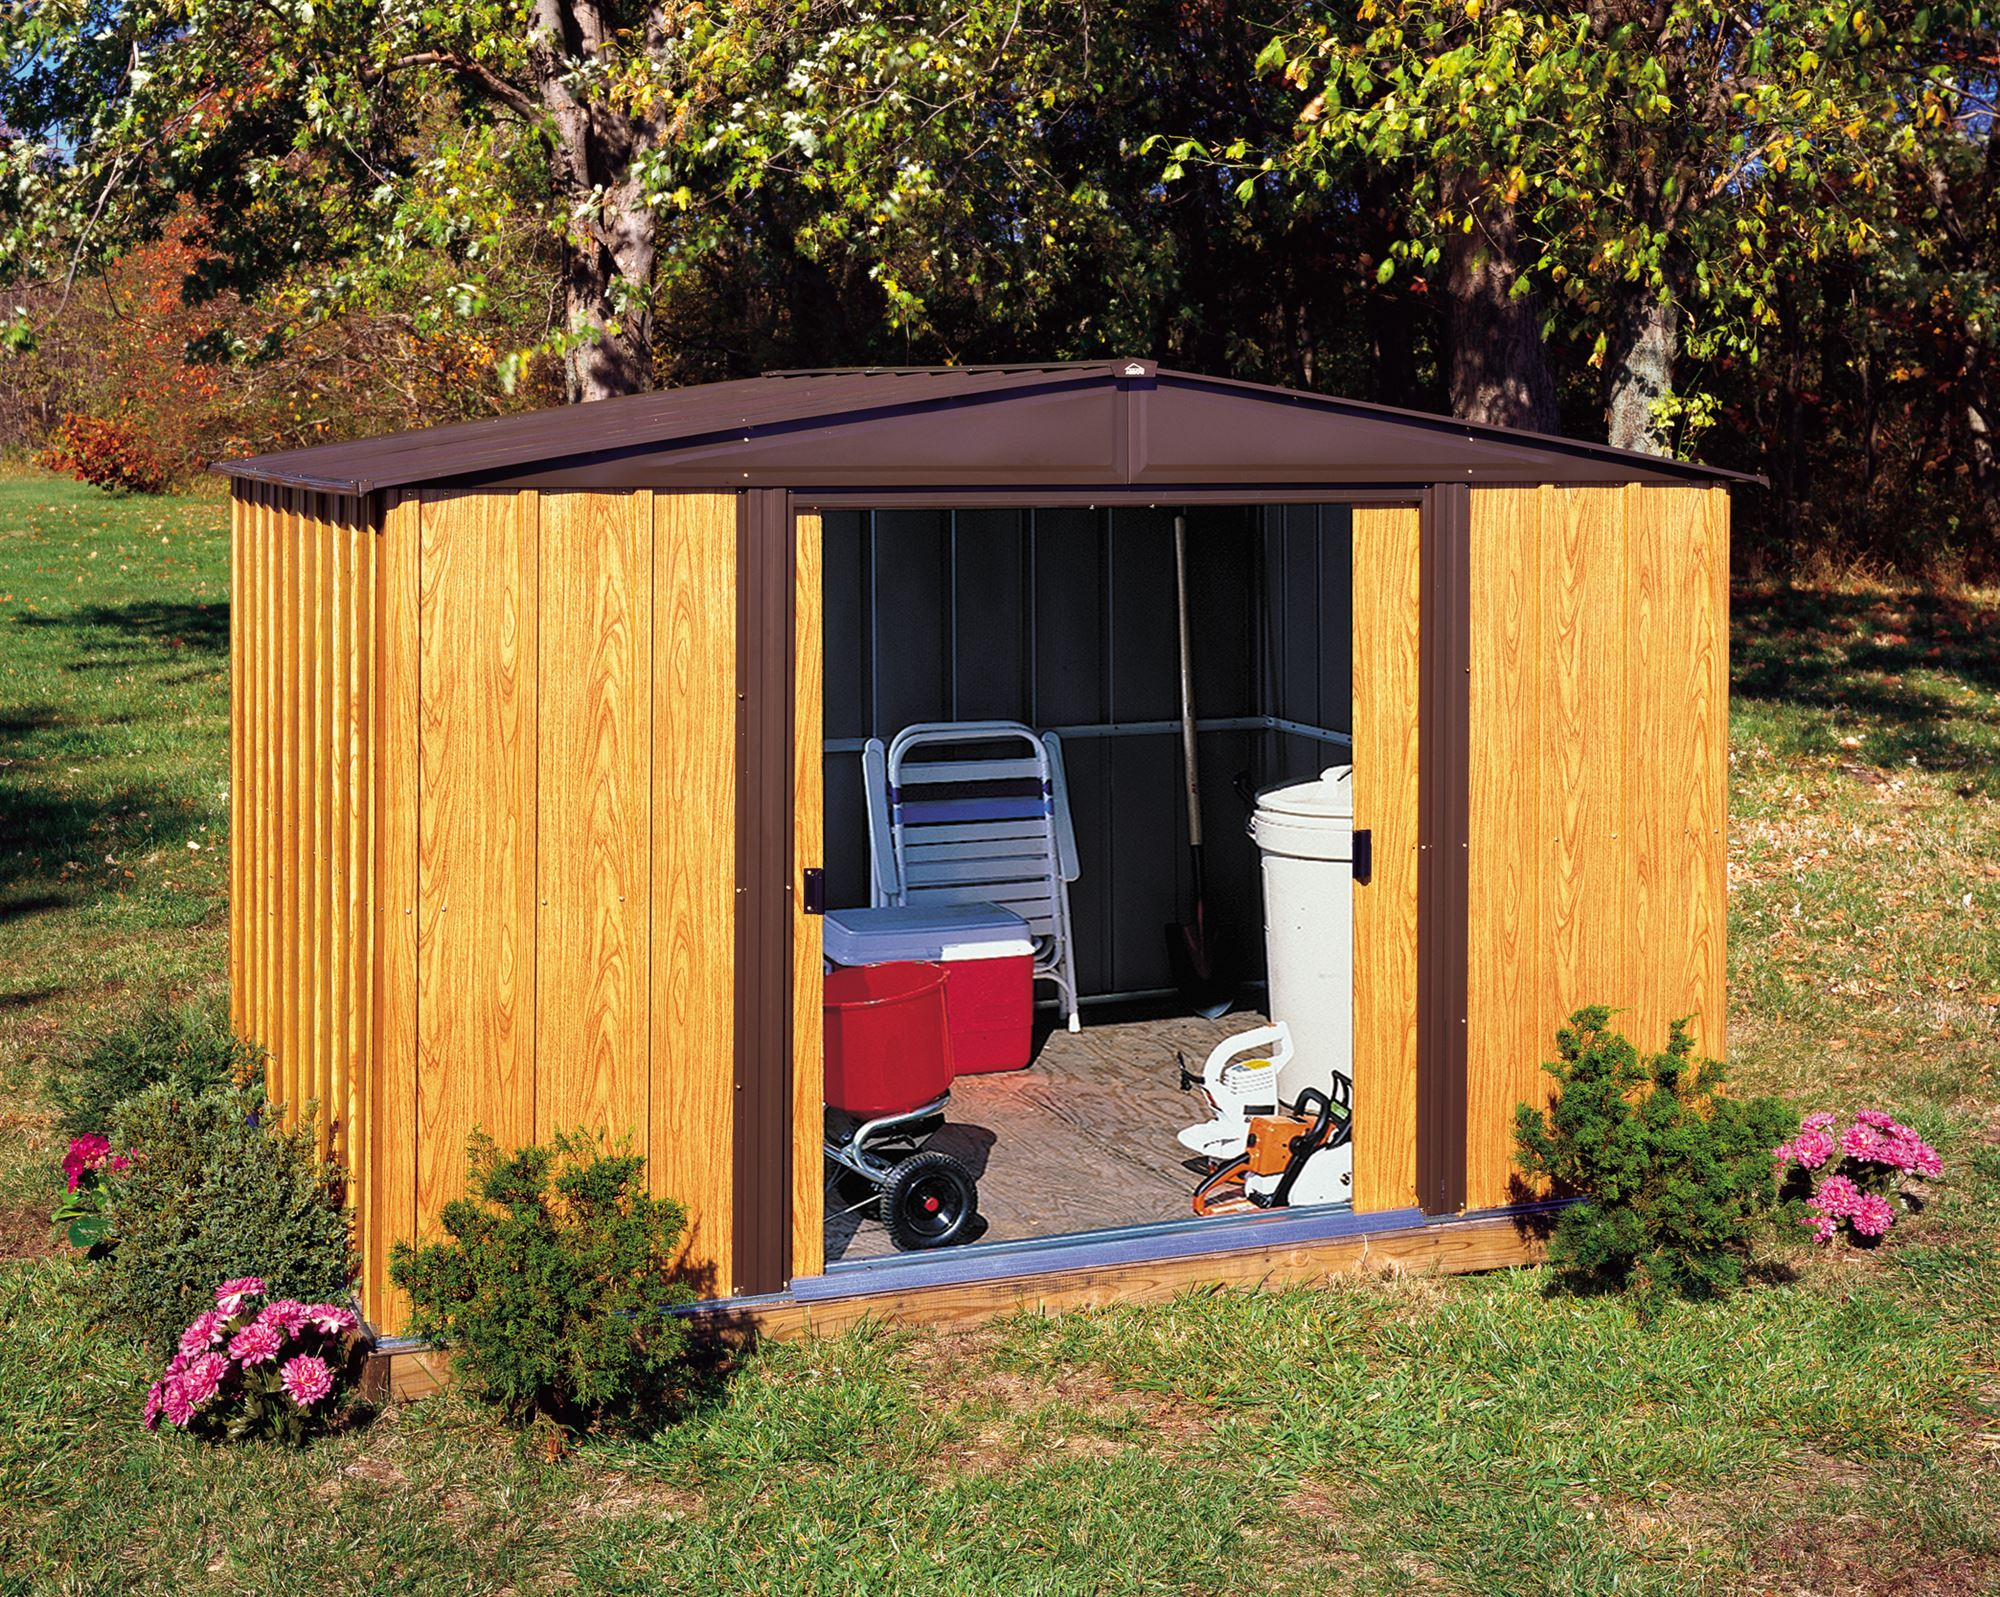 Garden Shed Arrow Wl108 dedans Abri De Jardin Arrow